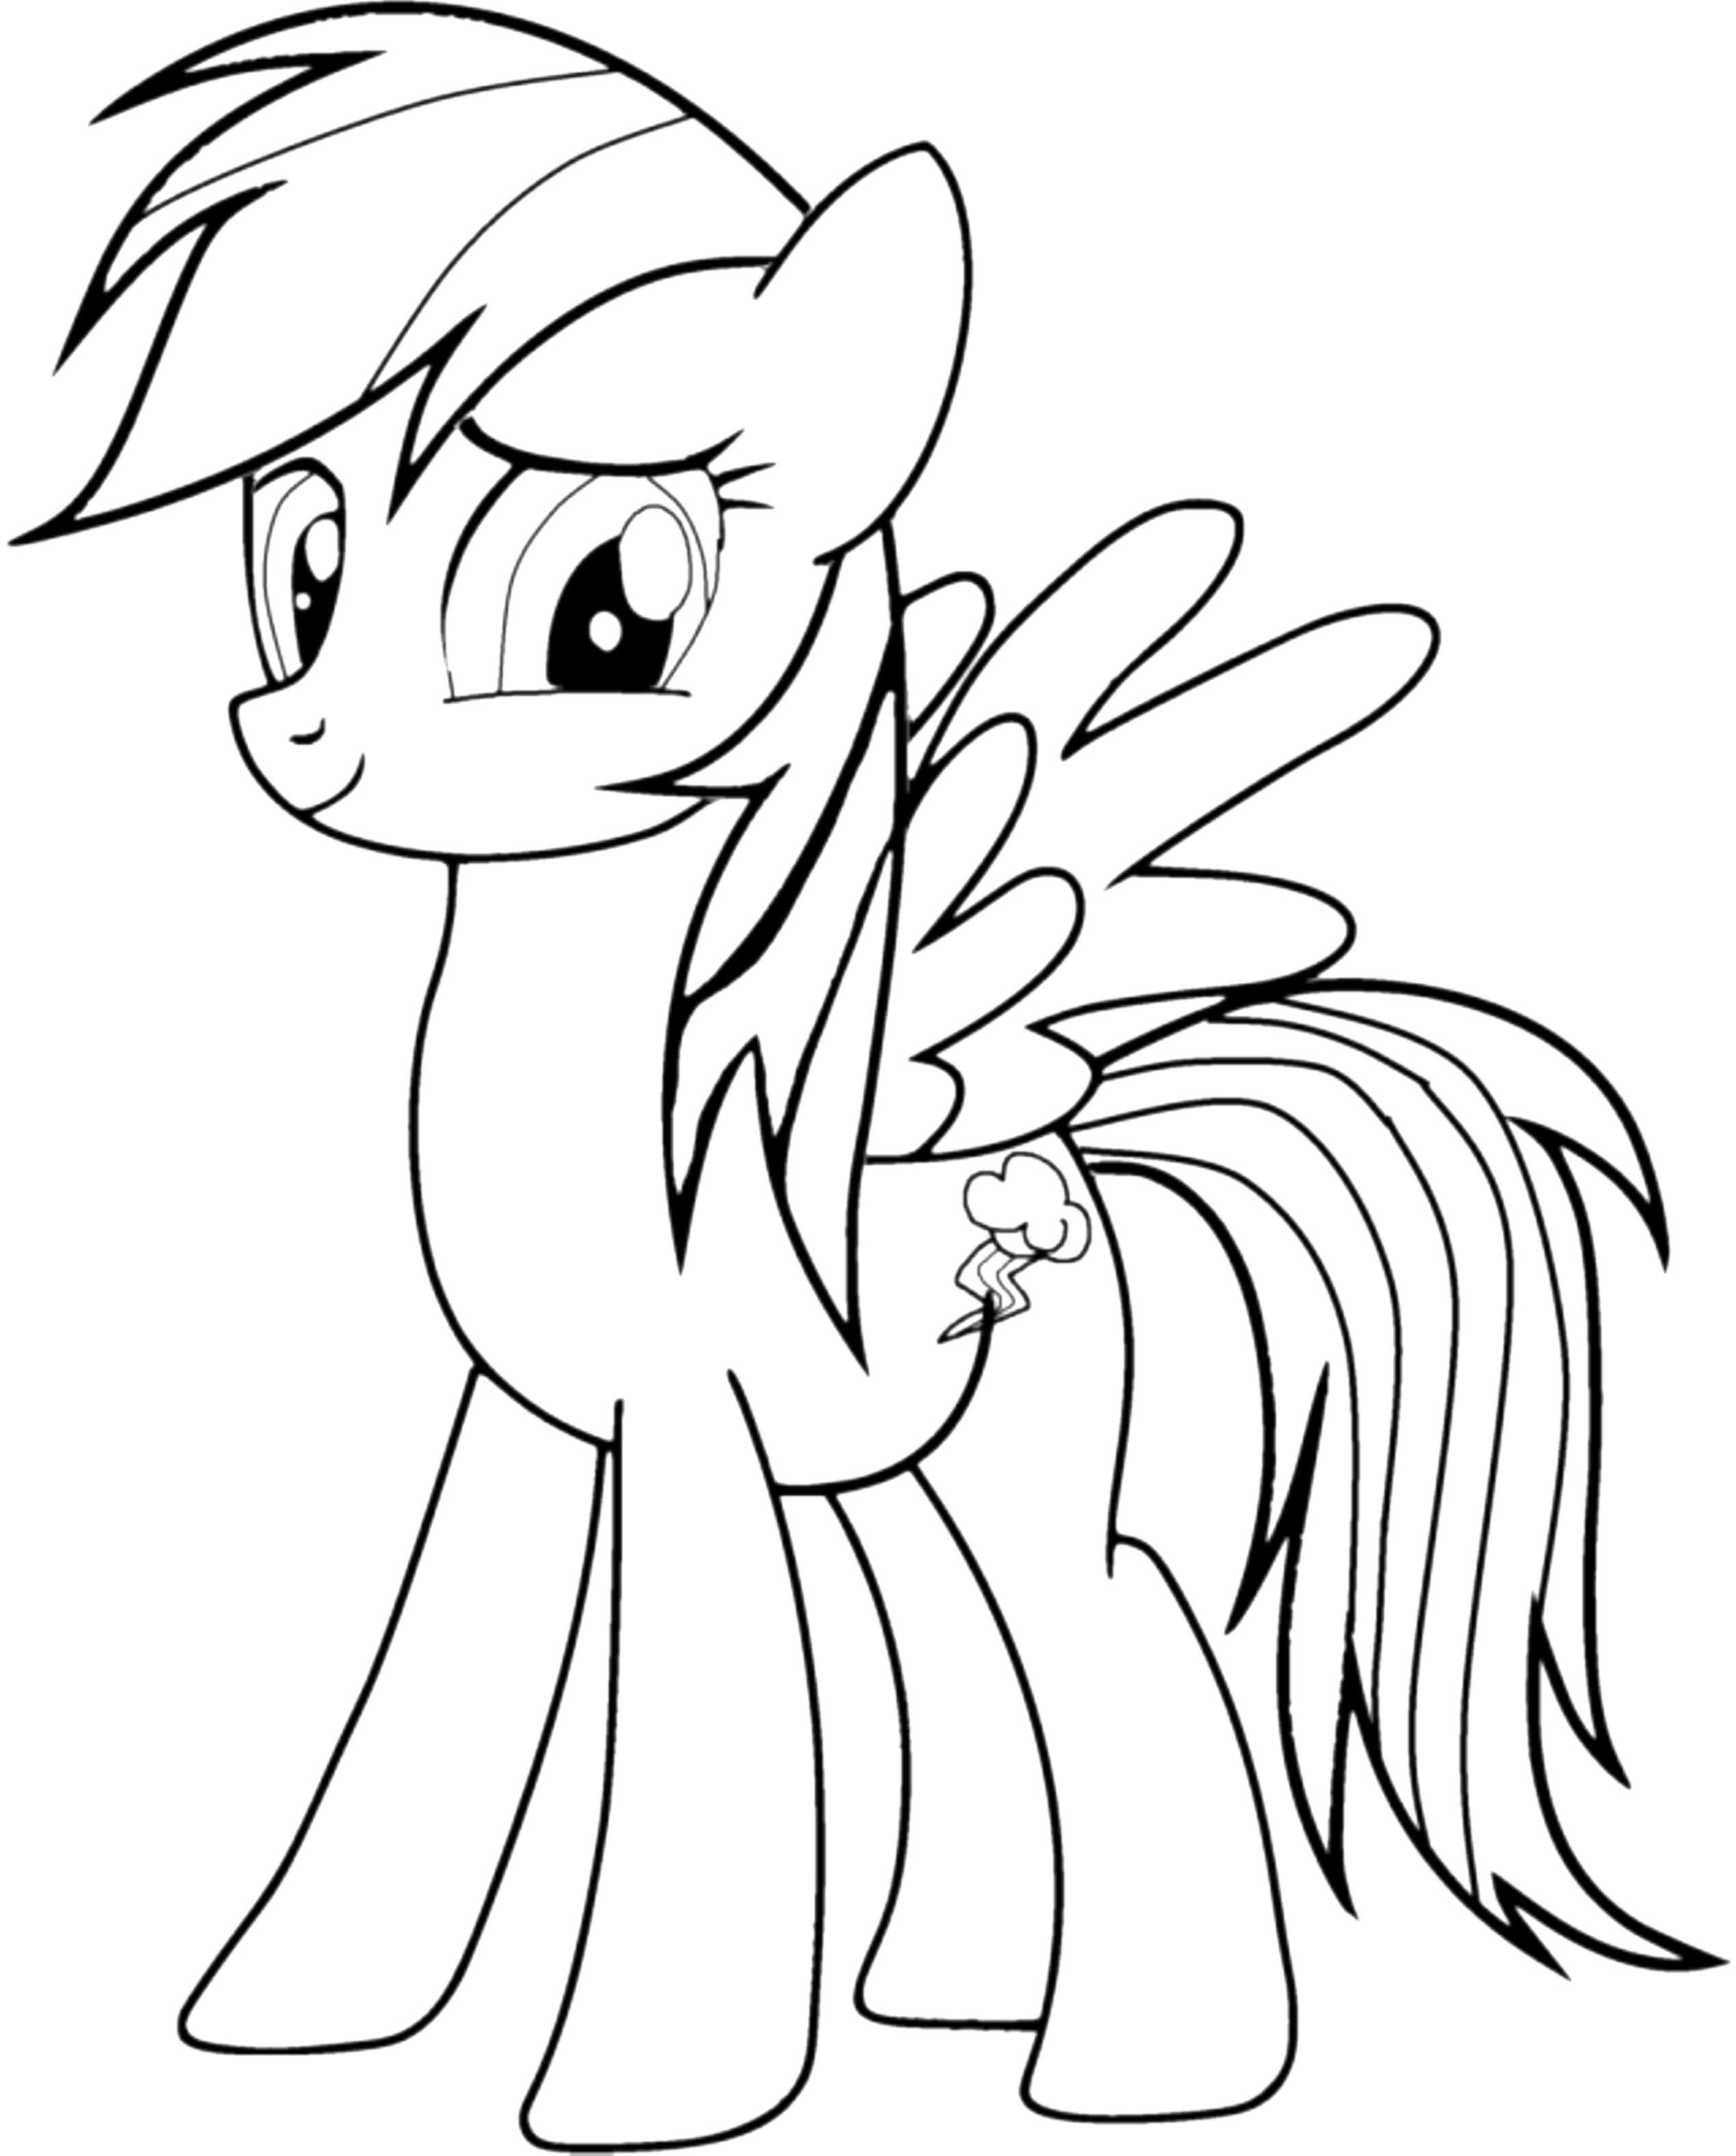 rainbow dash coloring pages printable - Rainbow Dash Coloring Page